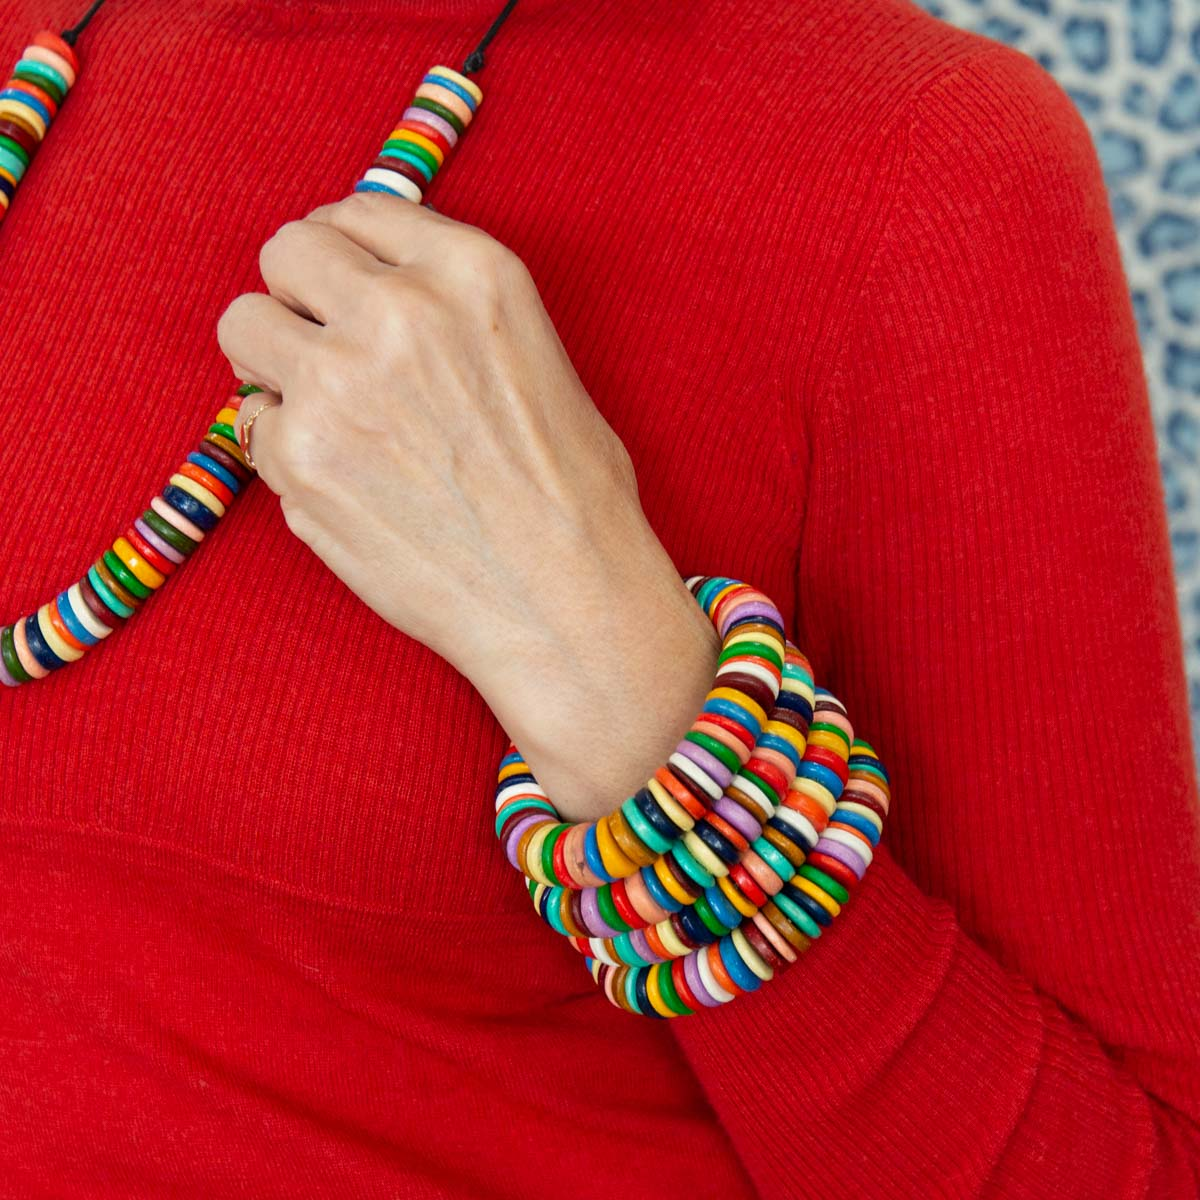 RO2007BG-MULTI-ELIZABETH-MASAI-BANGLE-UP-CLOSE.jpg